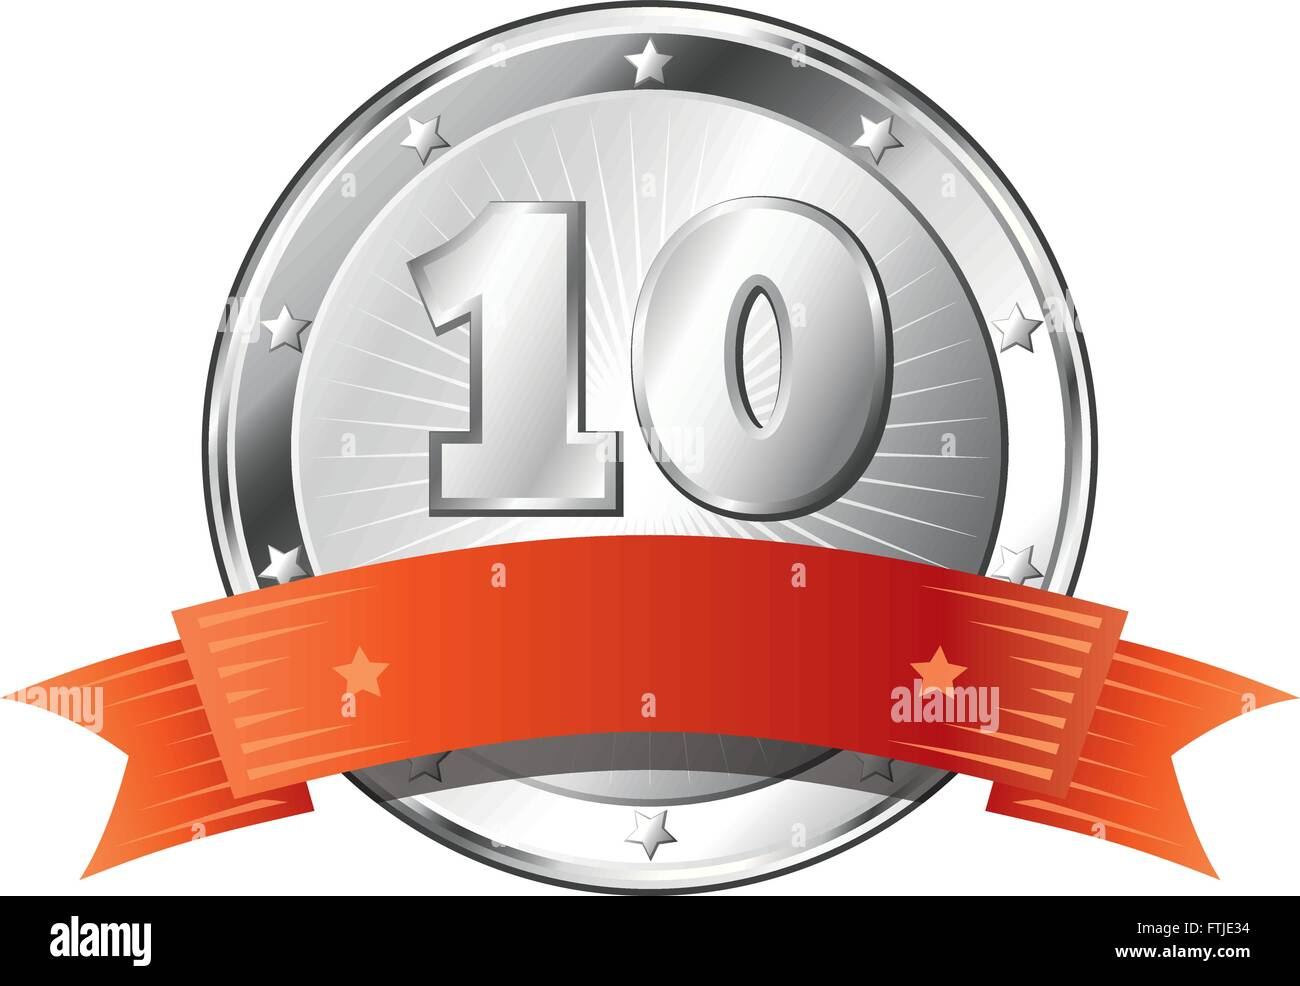 Round circle shaped metal badge / seal of approval in silver look with a red ribbon and the number ten. - Stock Vector